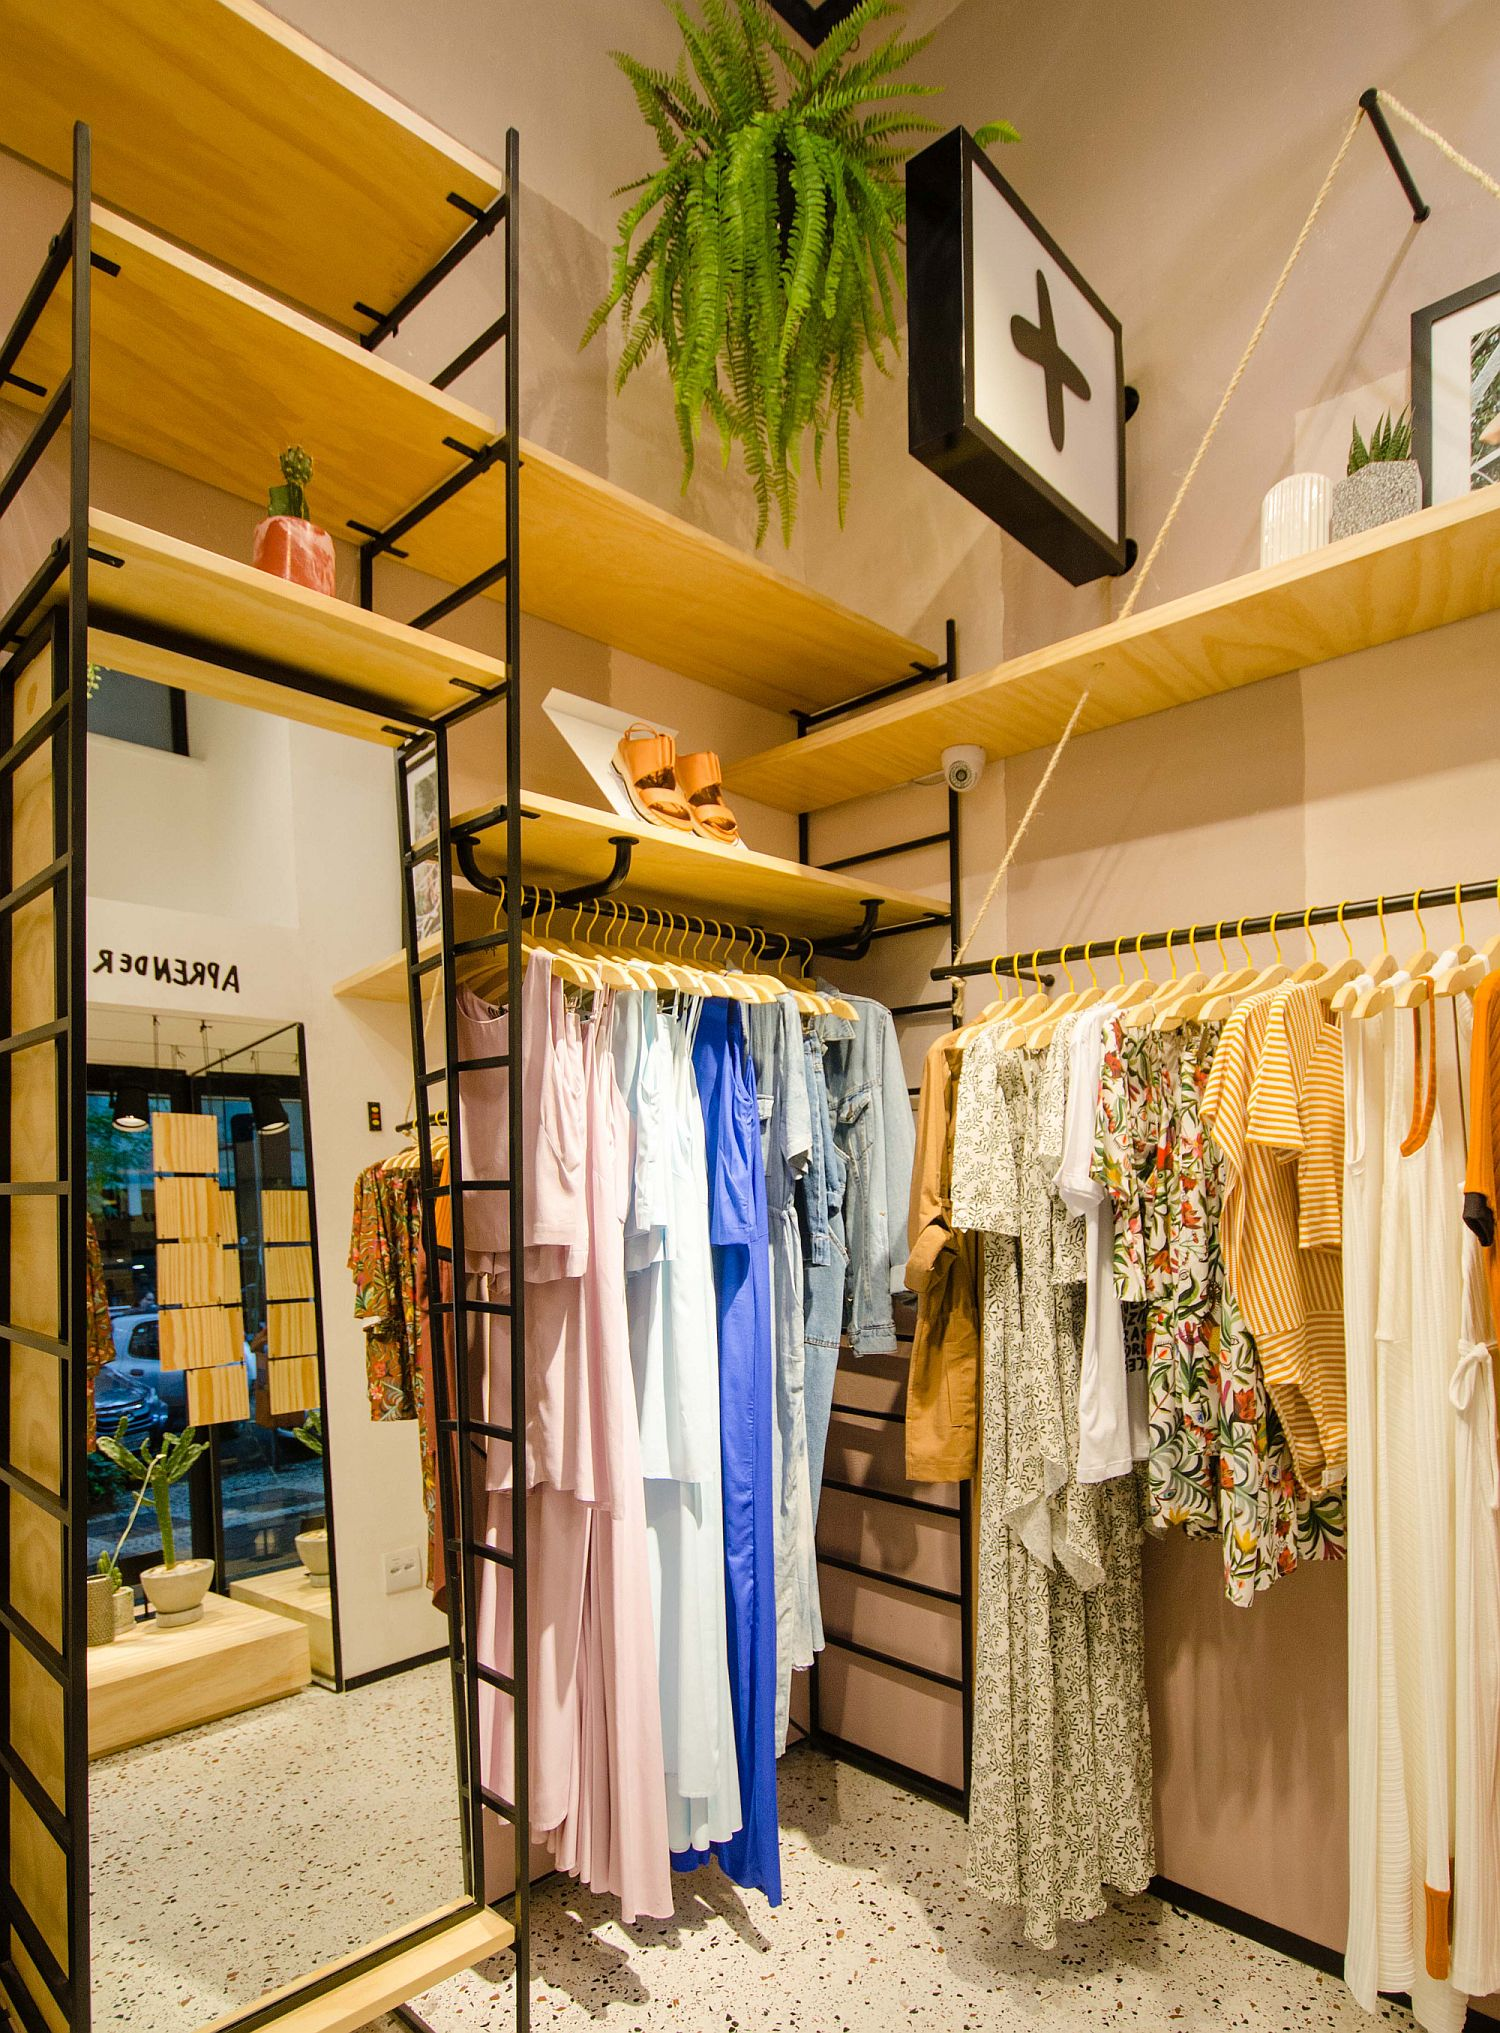 Metal-wood-and-greenery-shape-the-interior-of-the-store